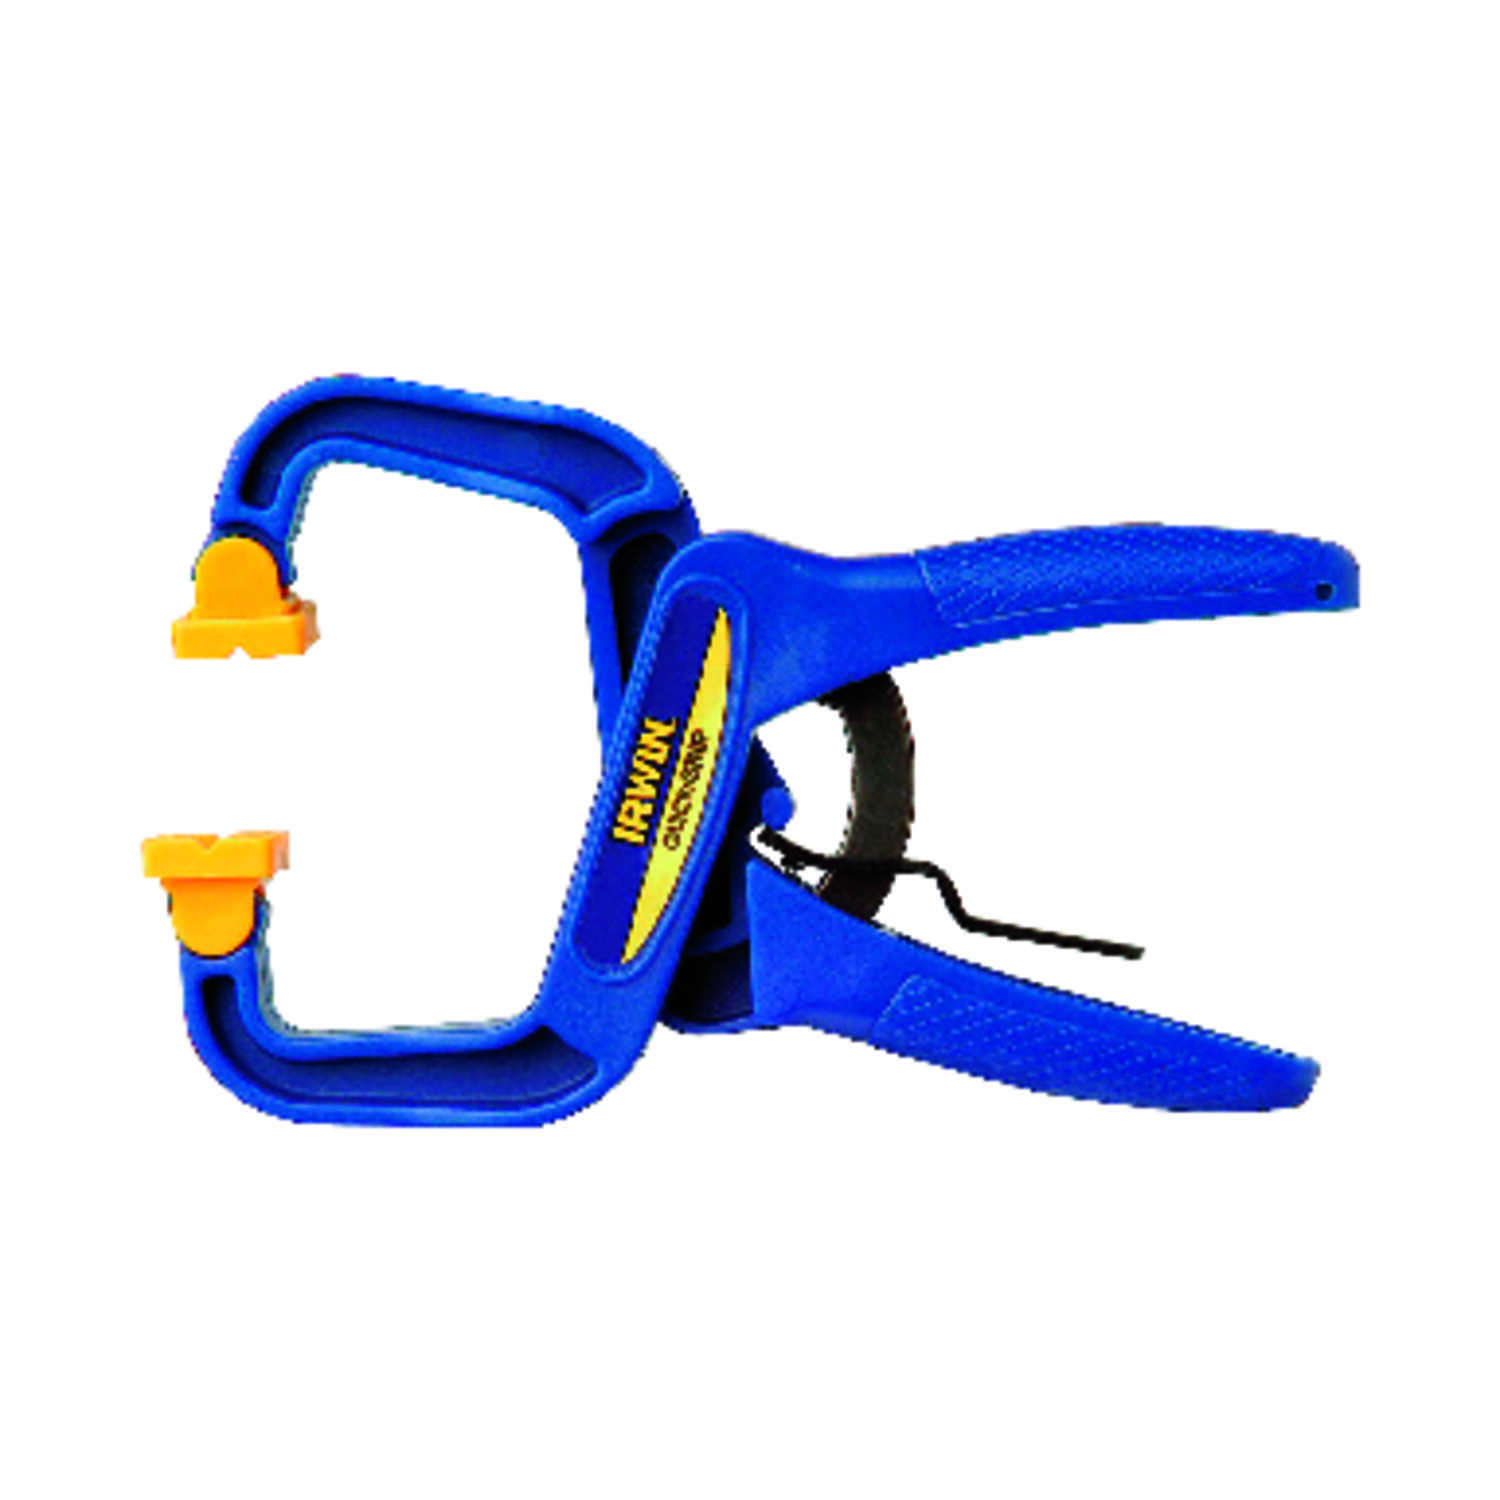 Irwin  Quick-Grip  1-1/2 in. D Resin  Locking  Handi-Clamp  Blue  1 pc.